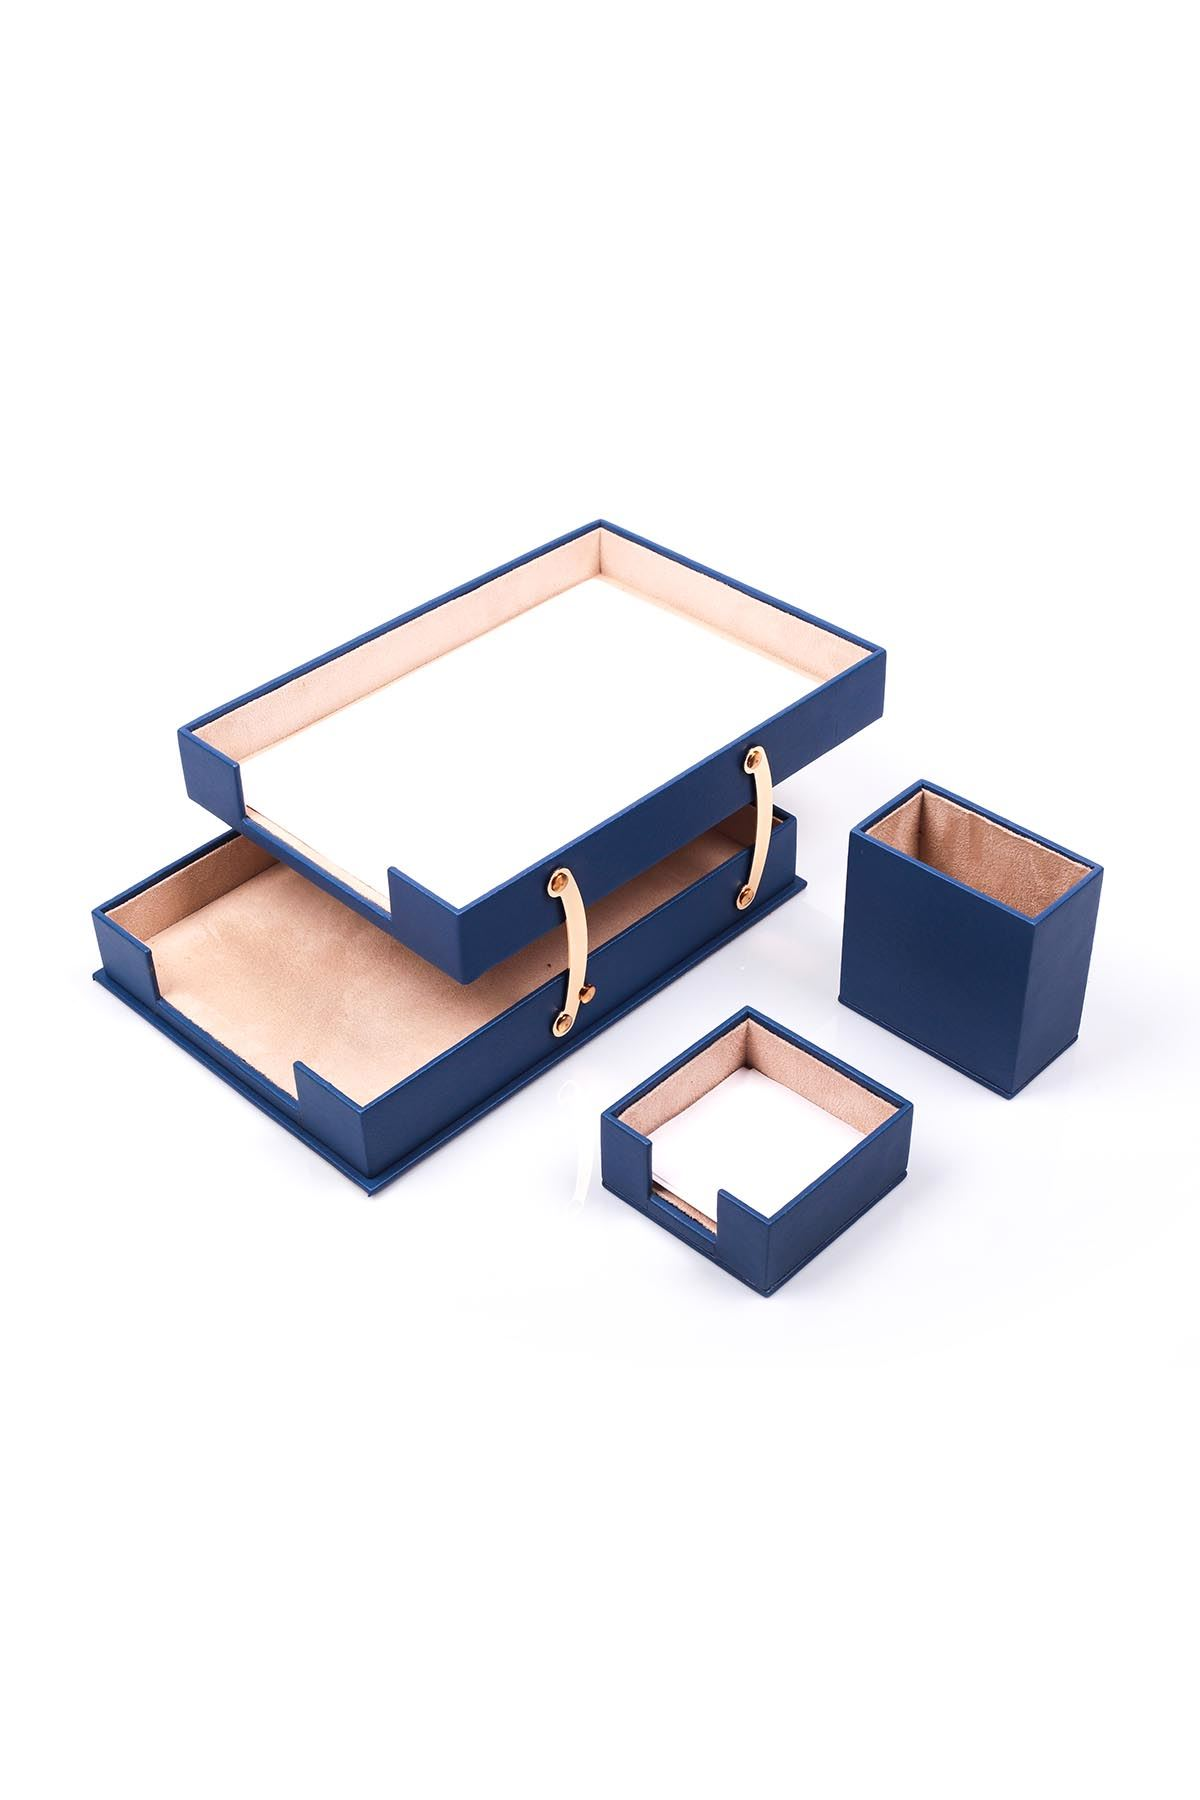 Double Document Tray With 2 Accessories Blue| Desk Set Accessories | Desktop Accessories | Desk Accessories | Desk Organizers